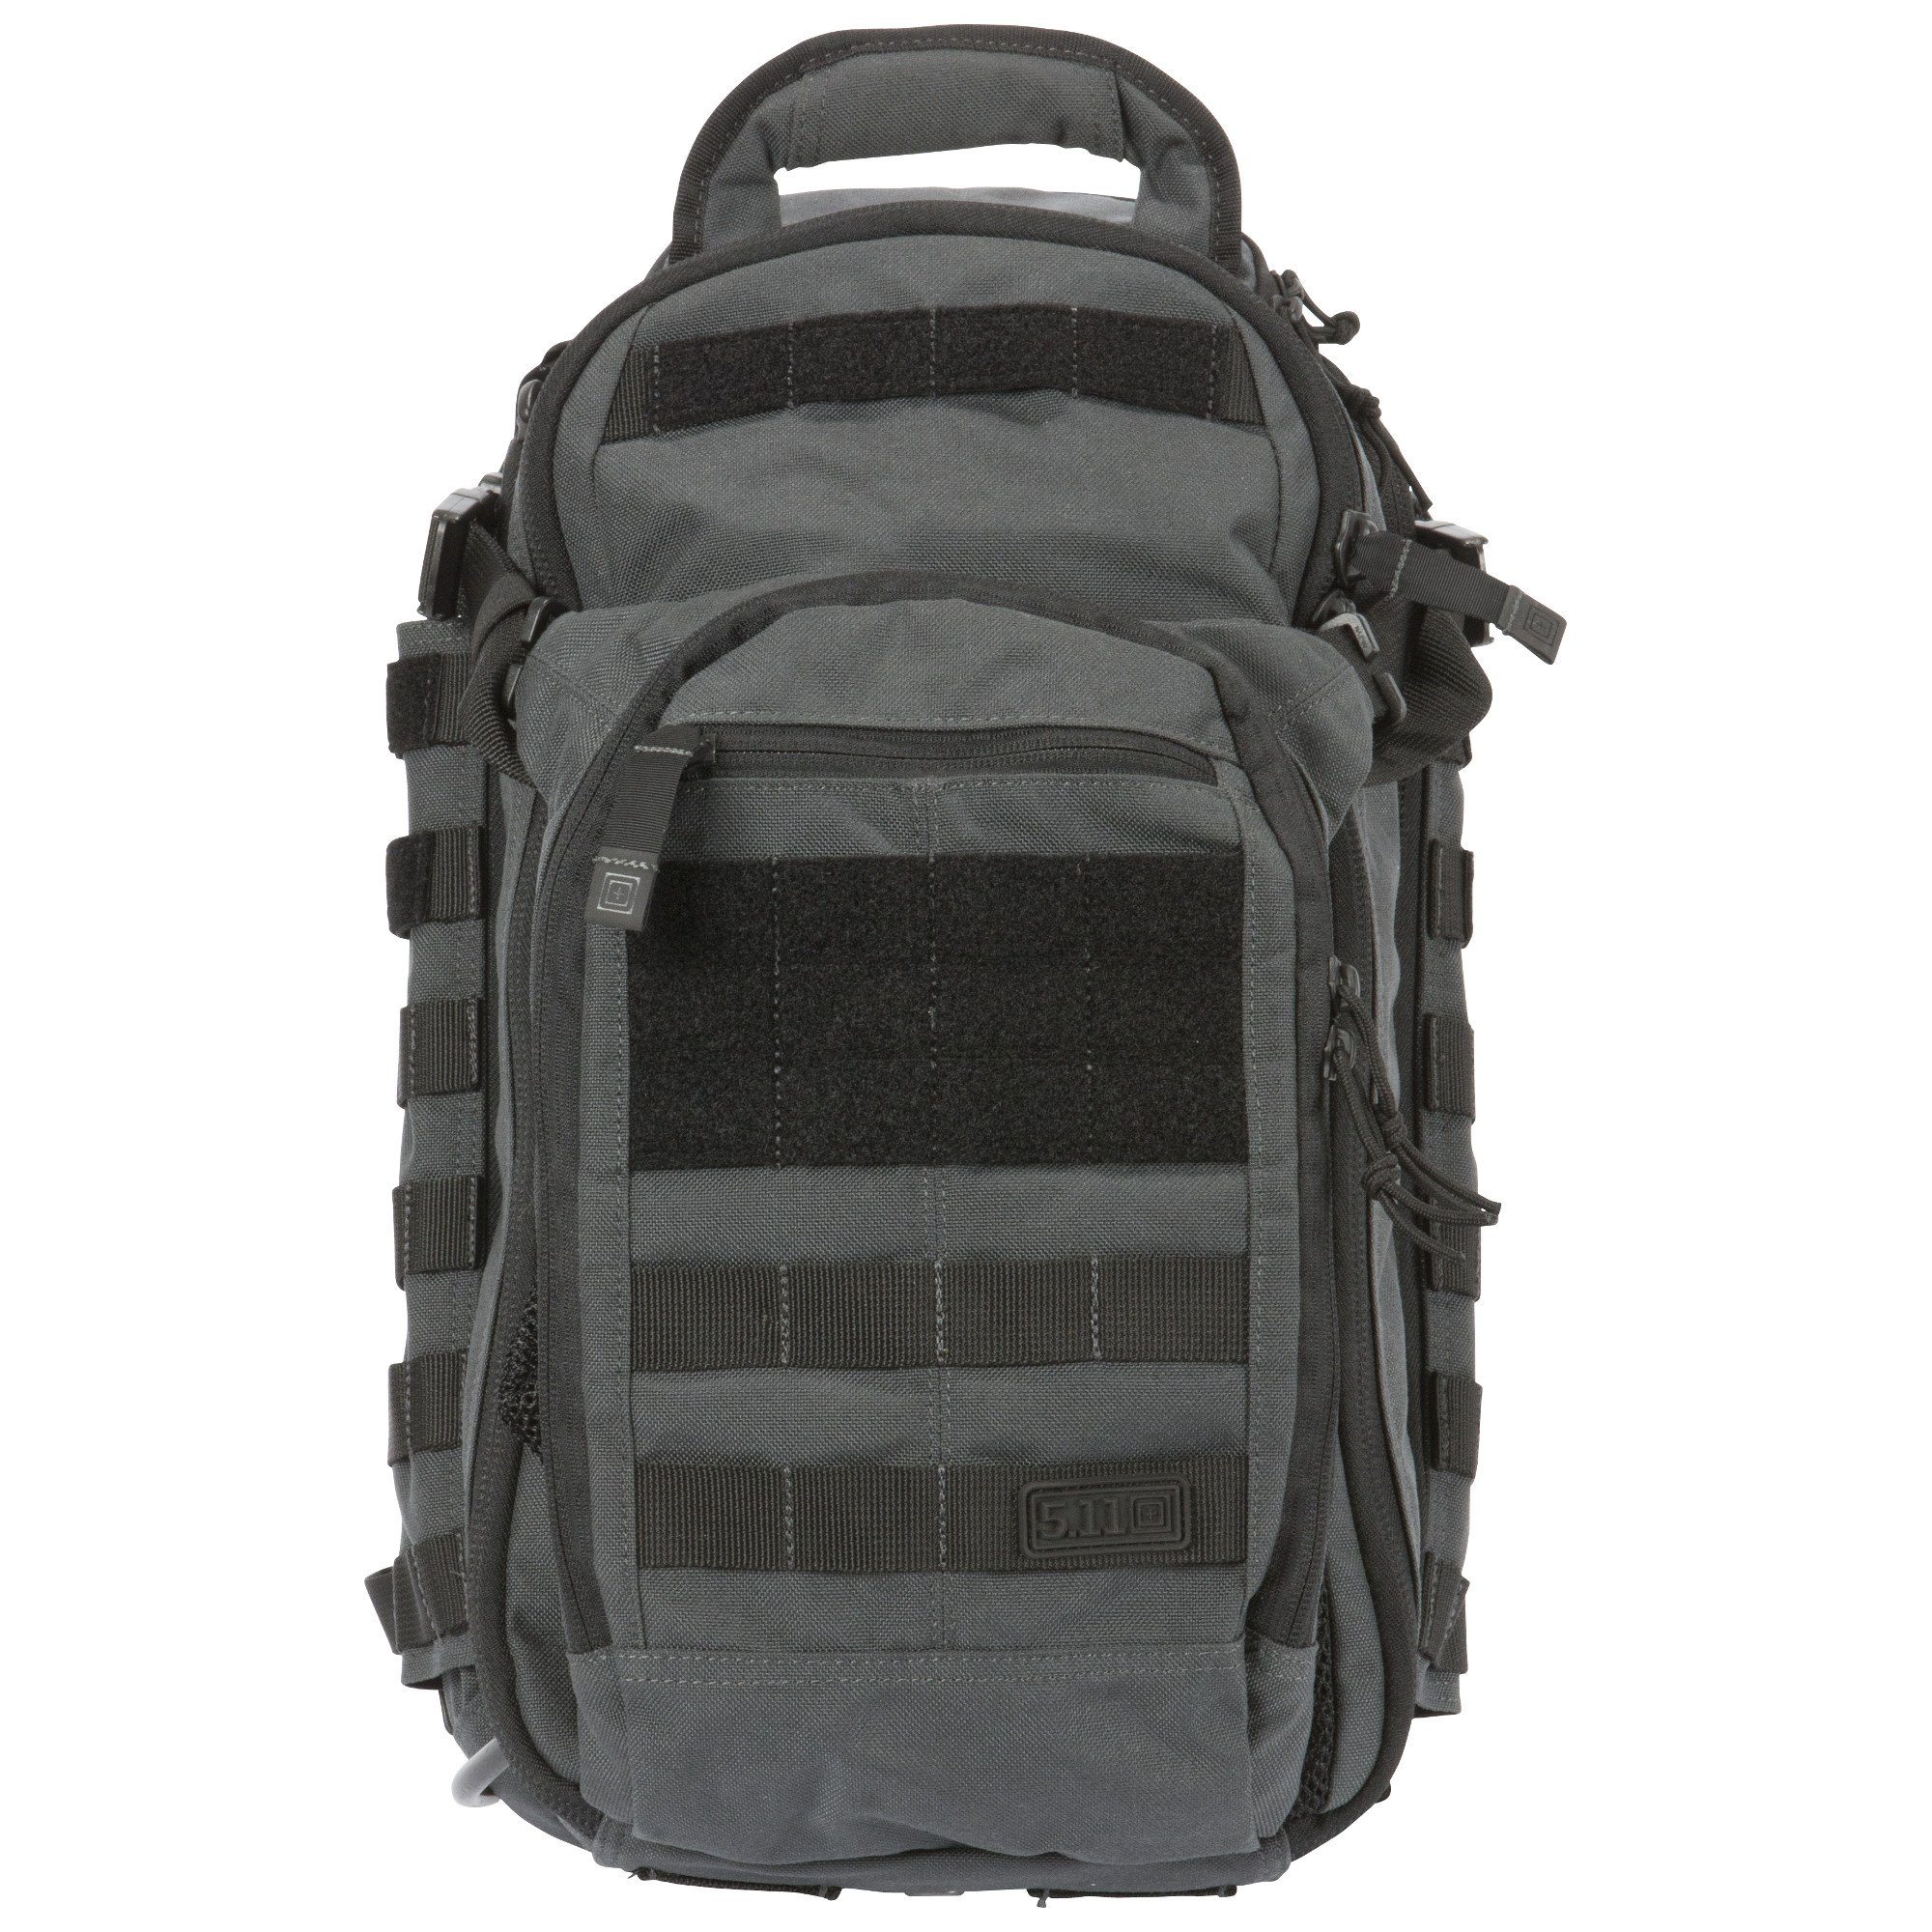 Balo 5.11 Tactical ALL HAZARDS NITRO 21L – Double Tap